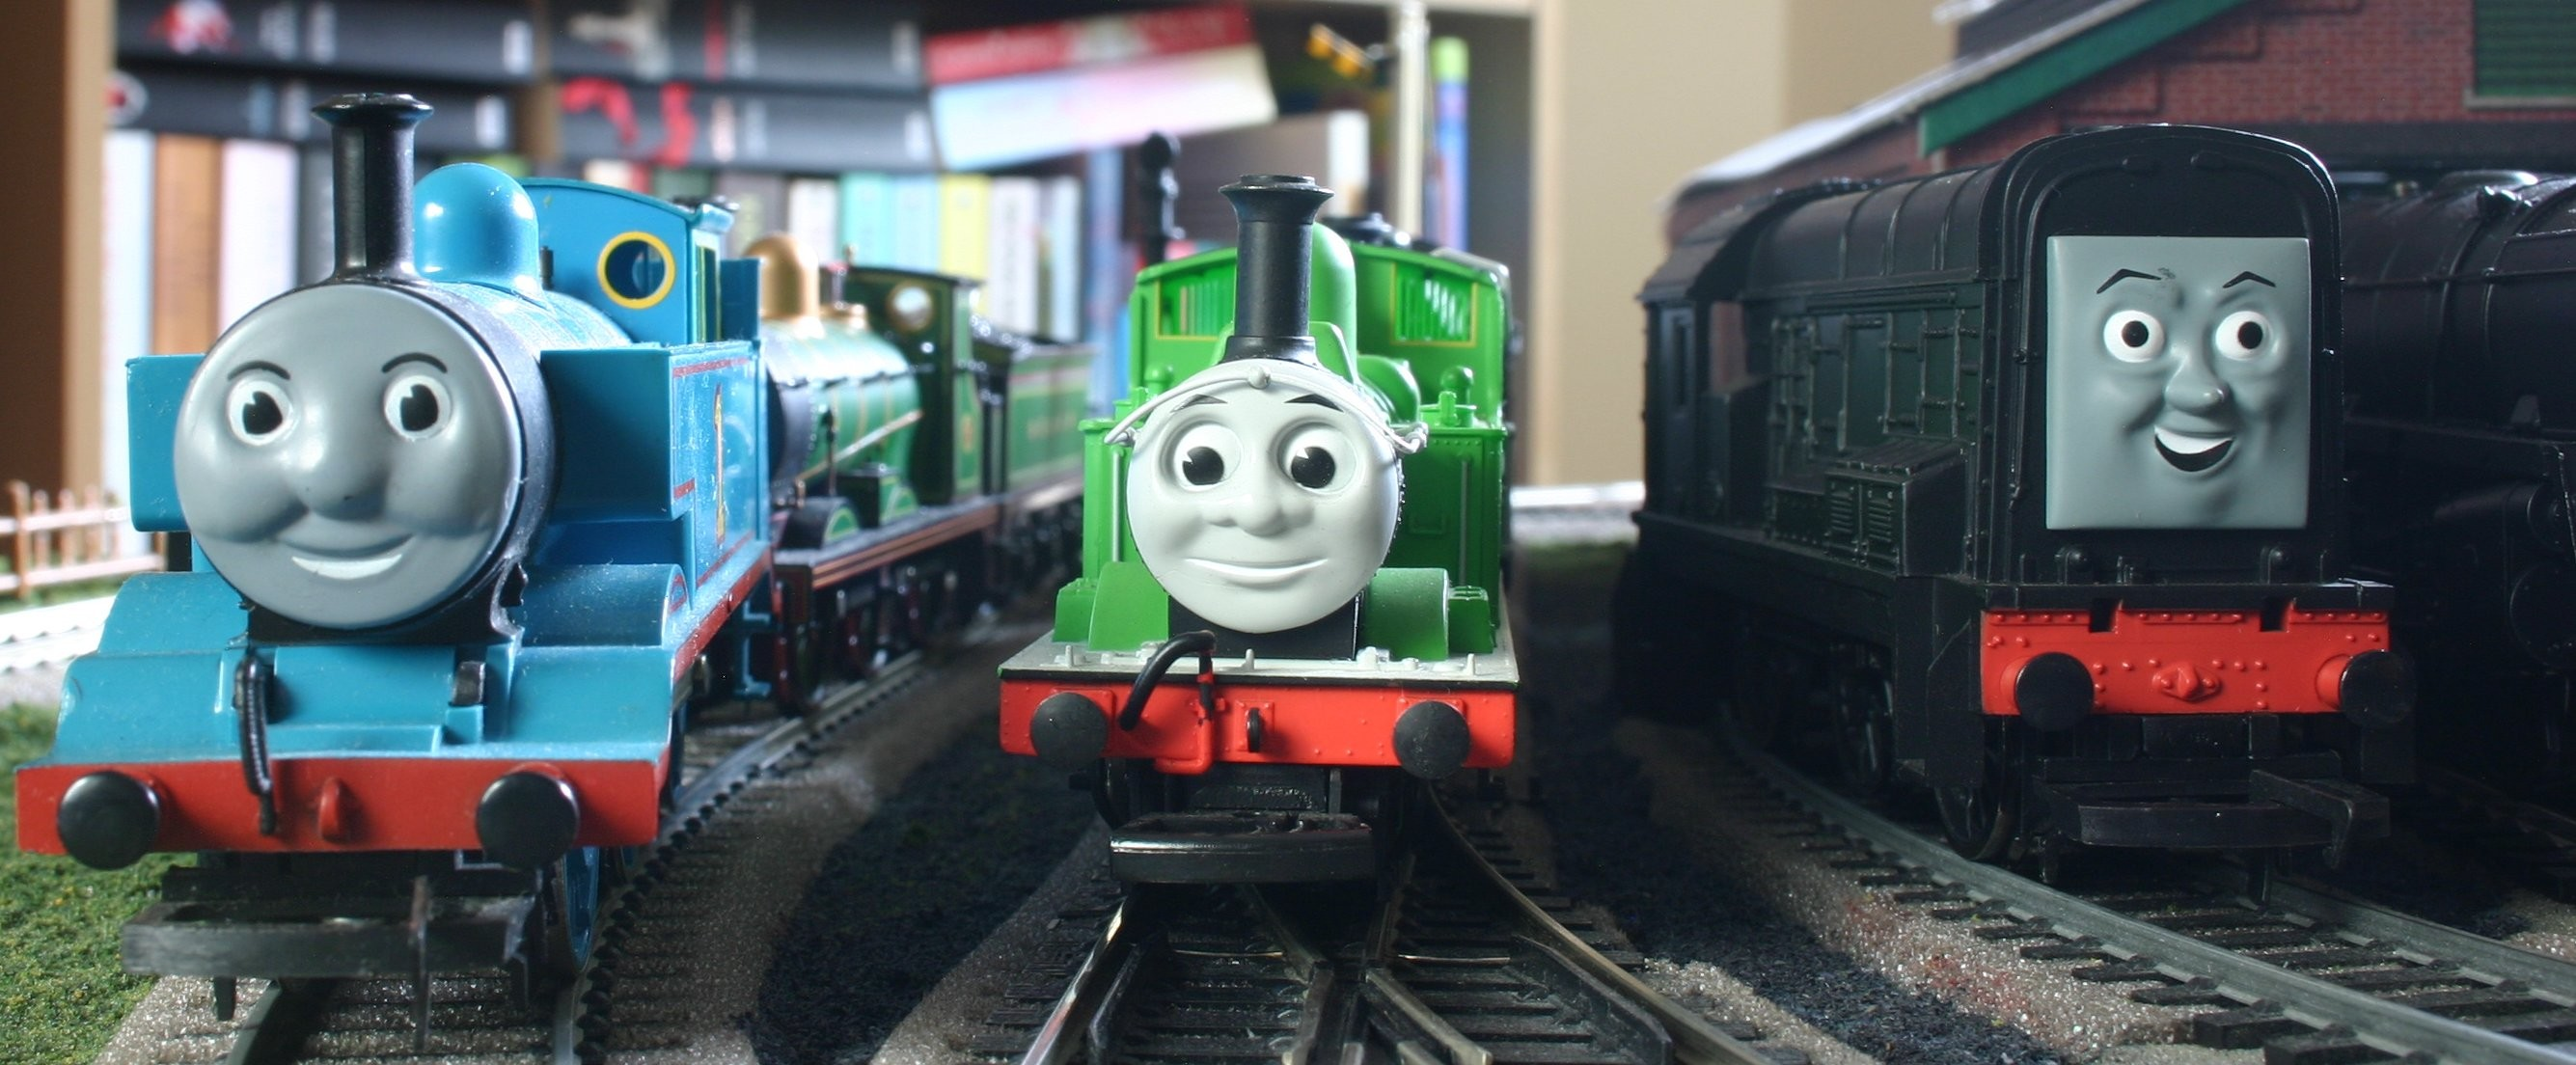 2670x1104 Thomas The Tank Engine & Friends Pics, TV Show Collection